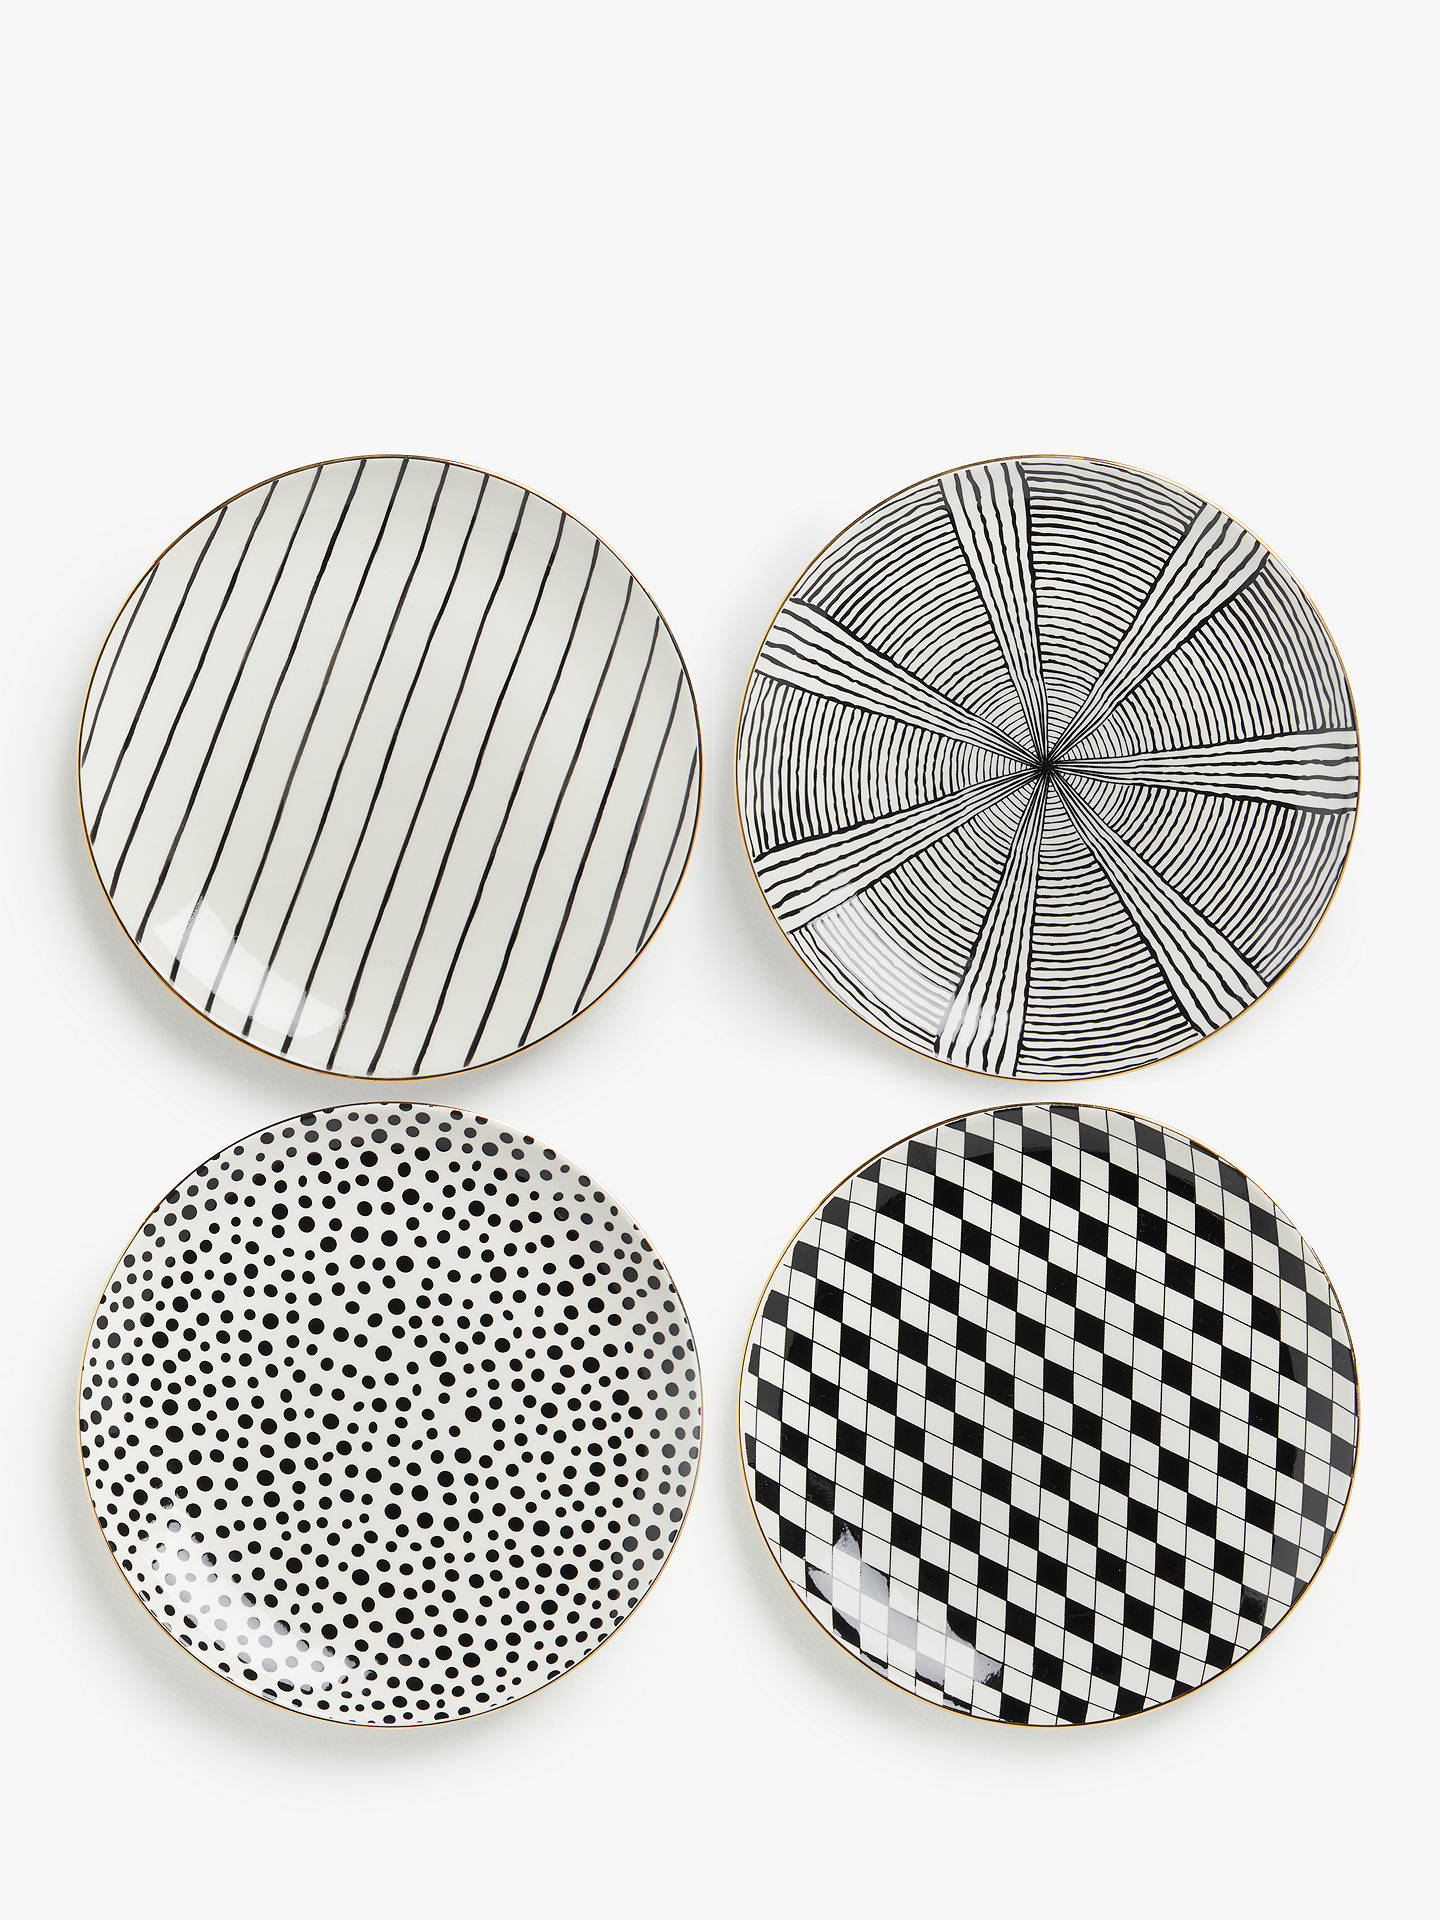 Buy John Lewis & Partners Fusion Gold Edge Patterned Plates, 21cm, Black/White Online at johnlewis.com